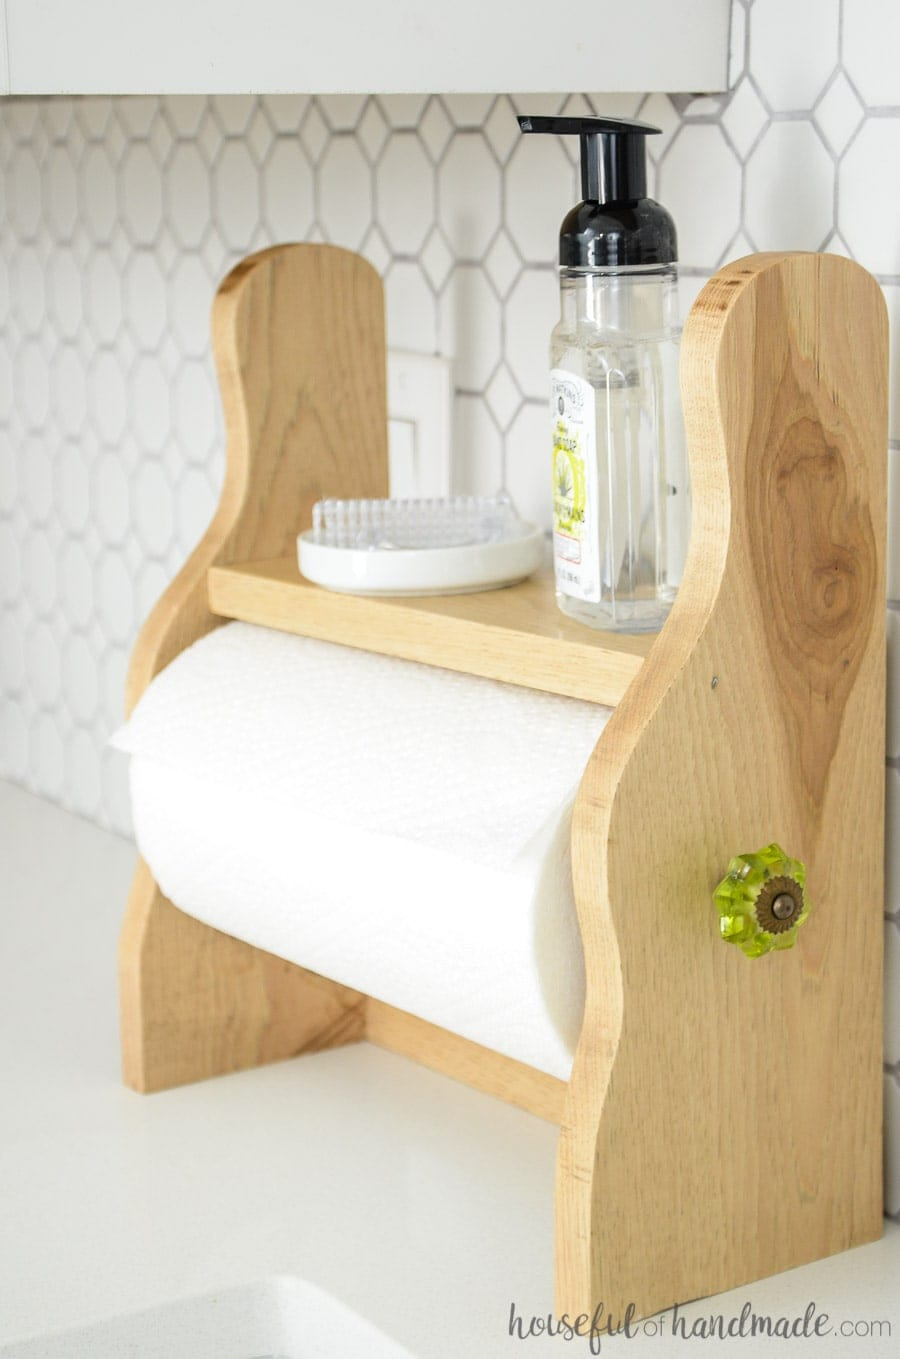 Farmhouse paper towel holder on kitchen counter with soap and brush